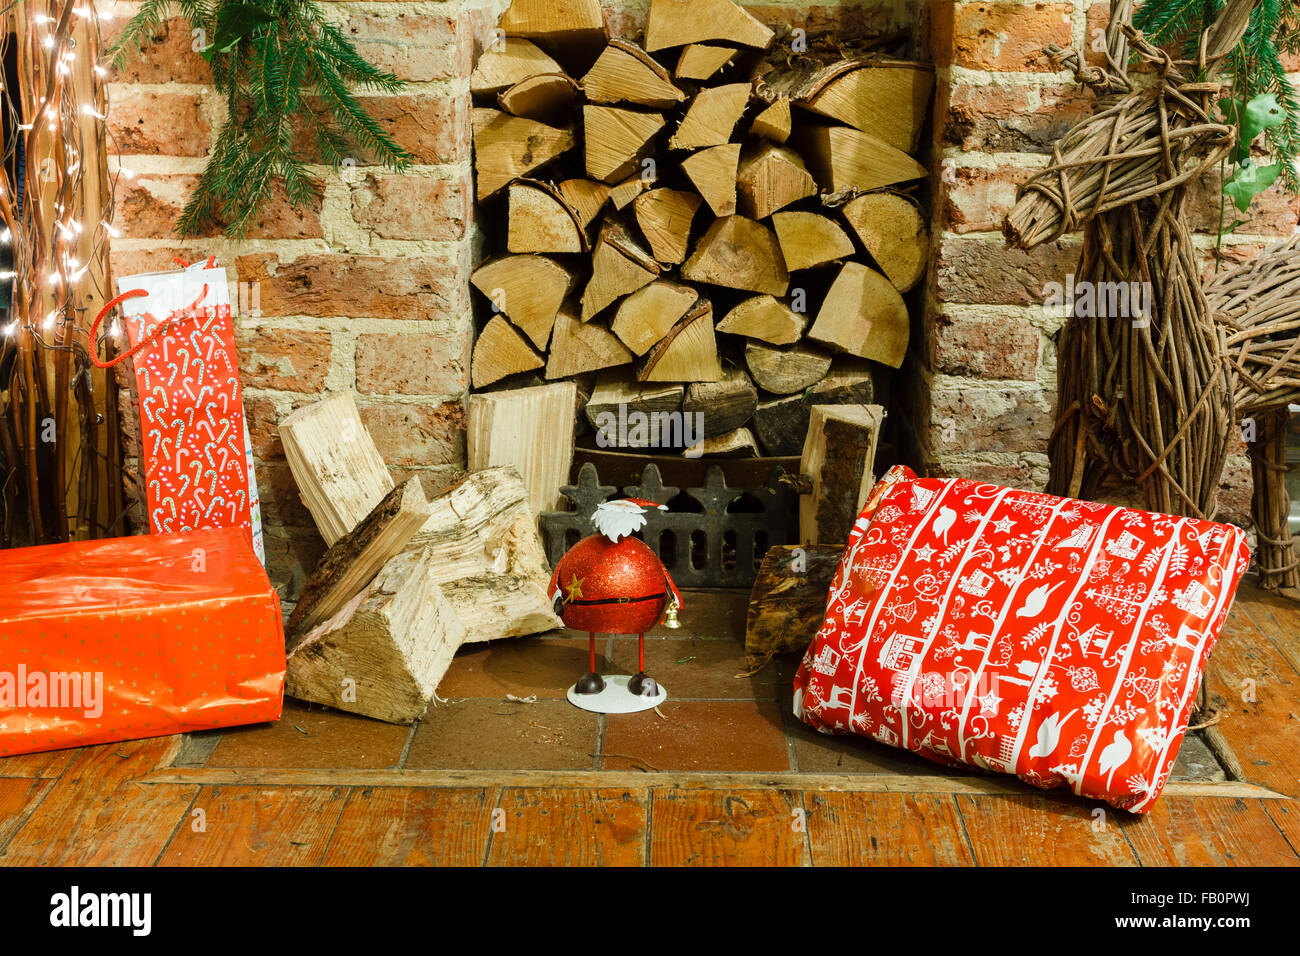 Christmas gifts and presents by a fireplace in an English living room - Stock Image